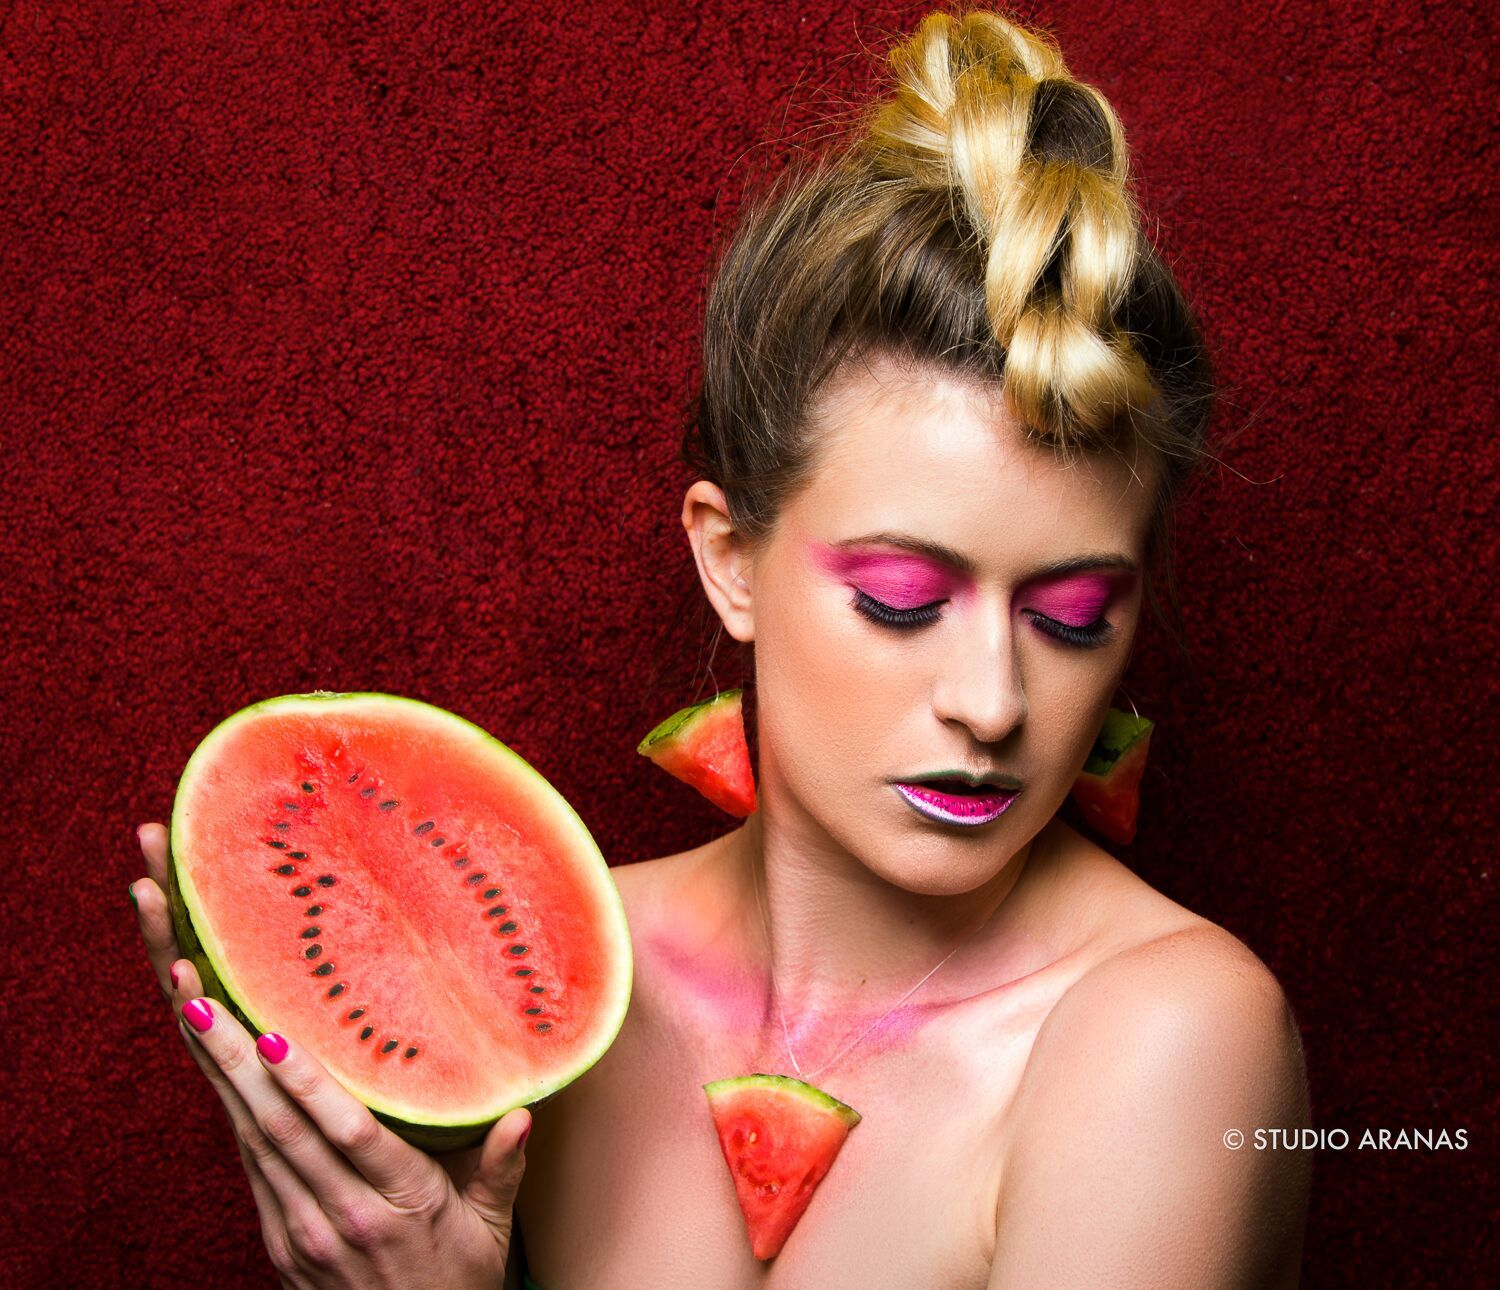 Published Fruit Shoot: Watermelon